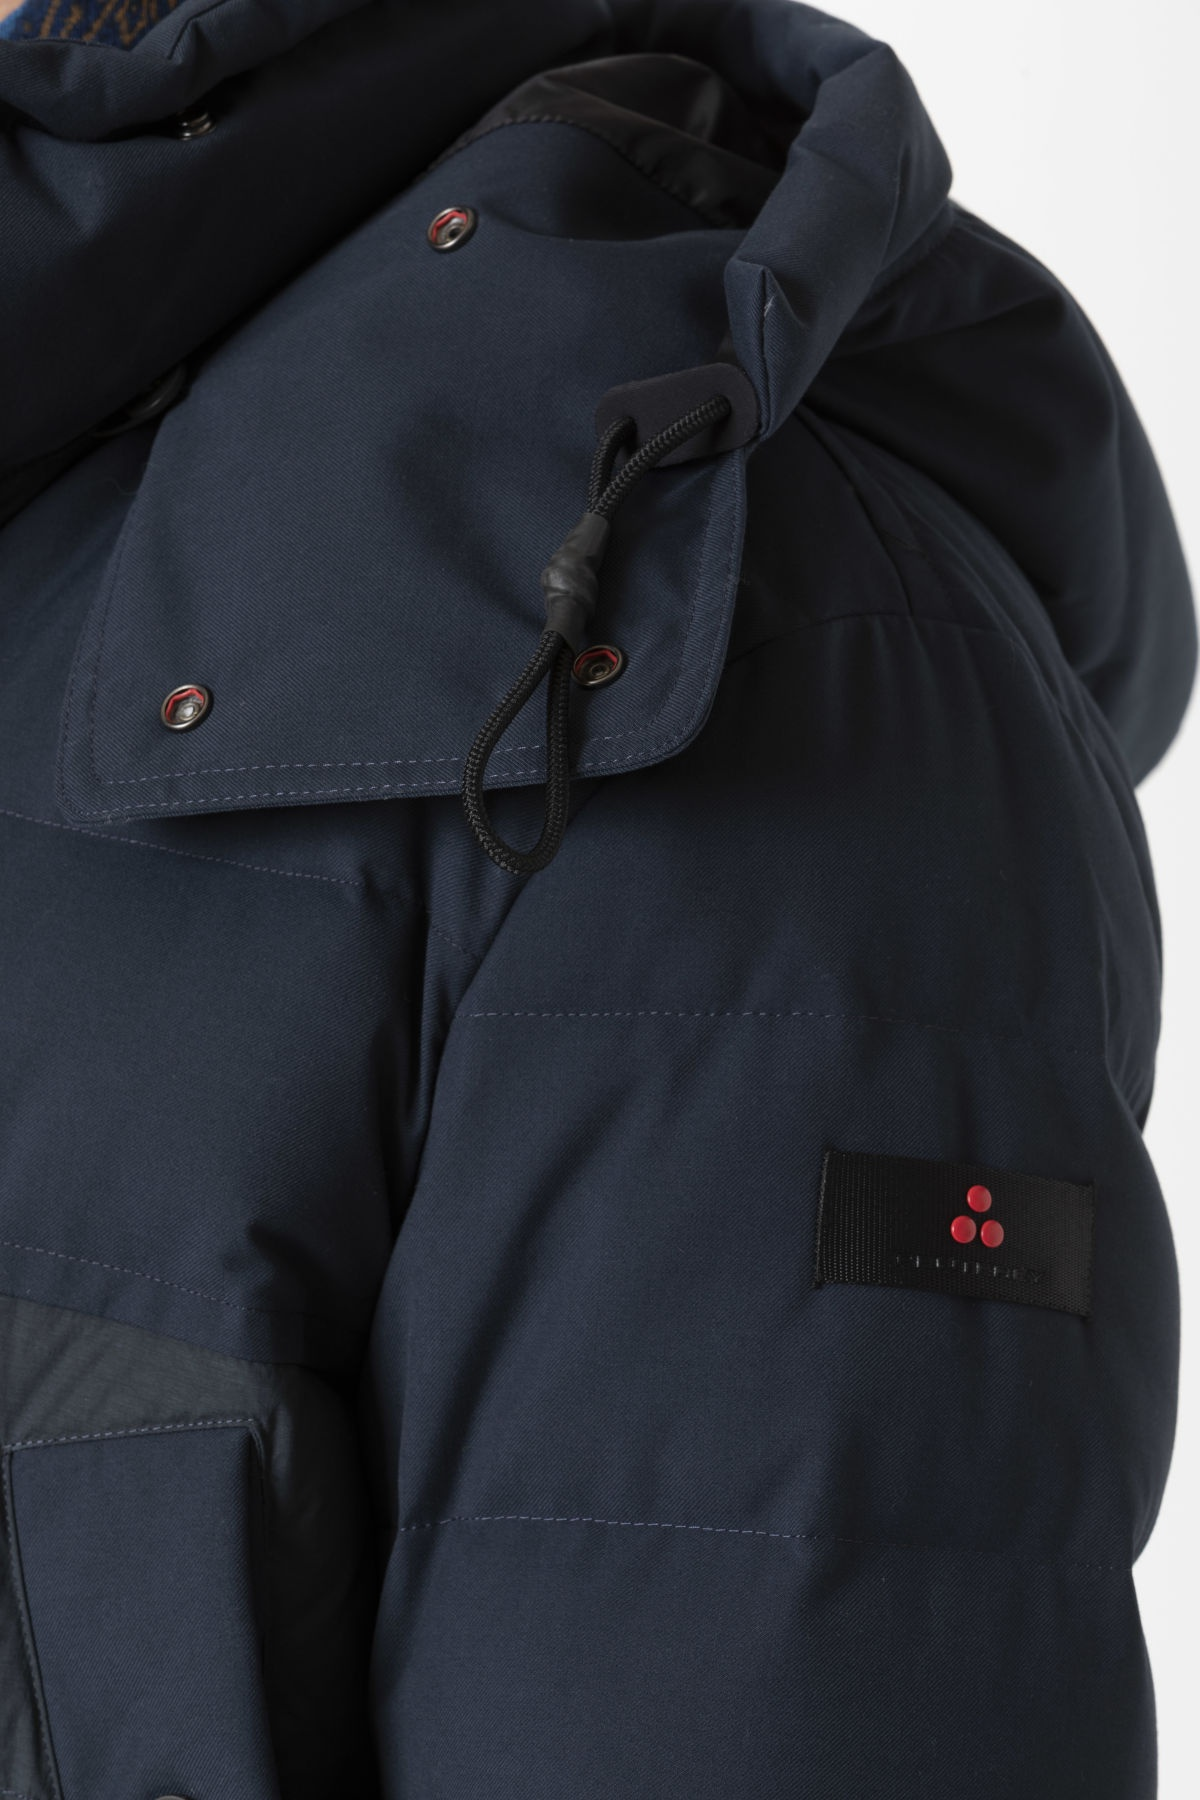 DOUBLE FABRIC DOWN Jacket for man PEUTEREY F/W 19-20